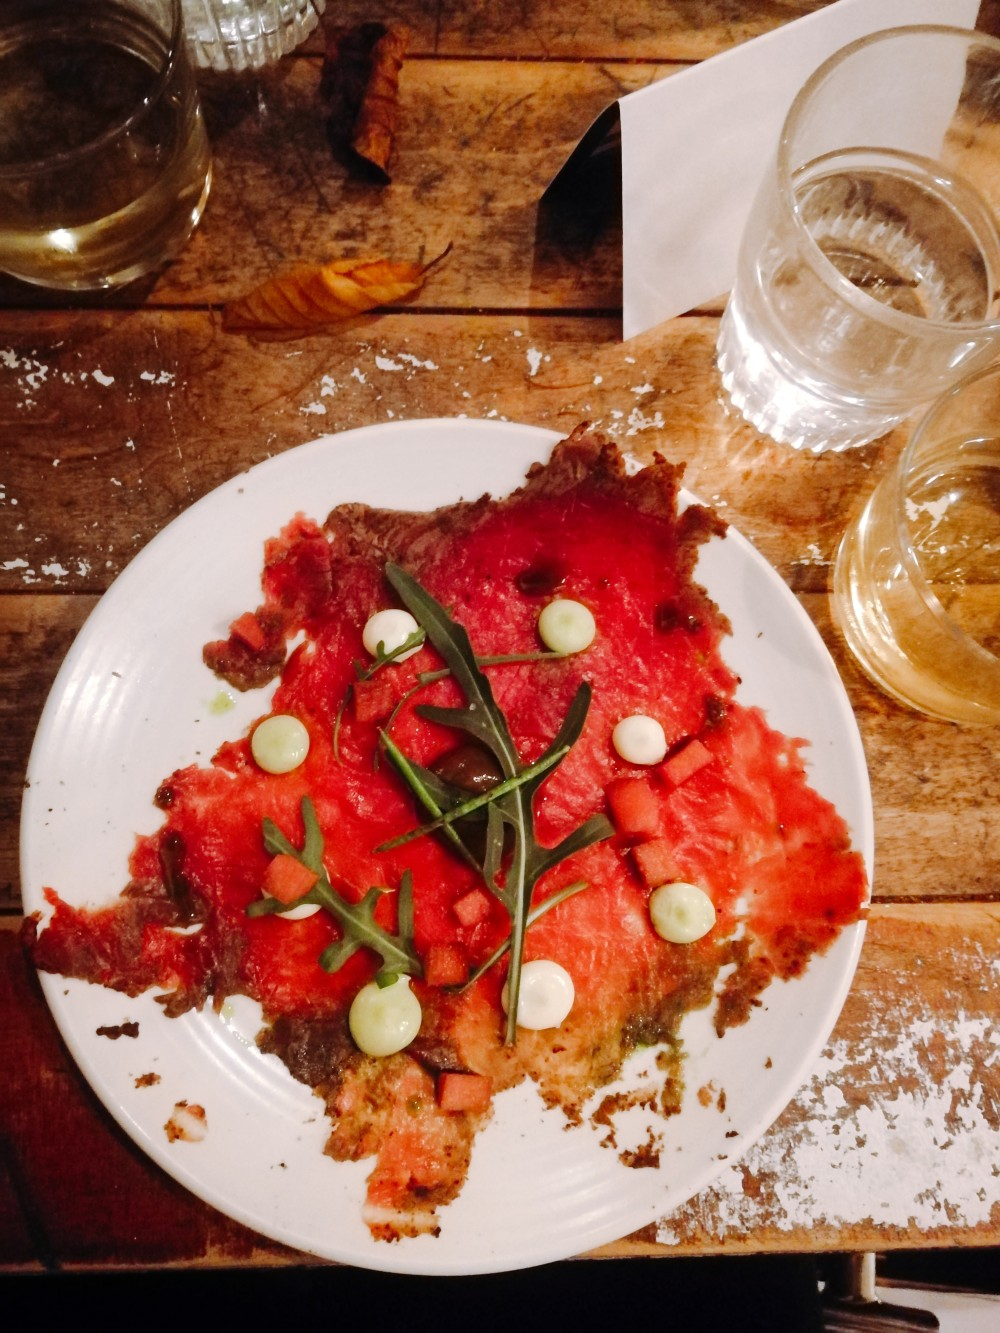 Venison carpaccio - photo taken from above showing rustic table